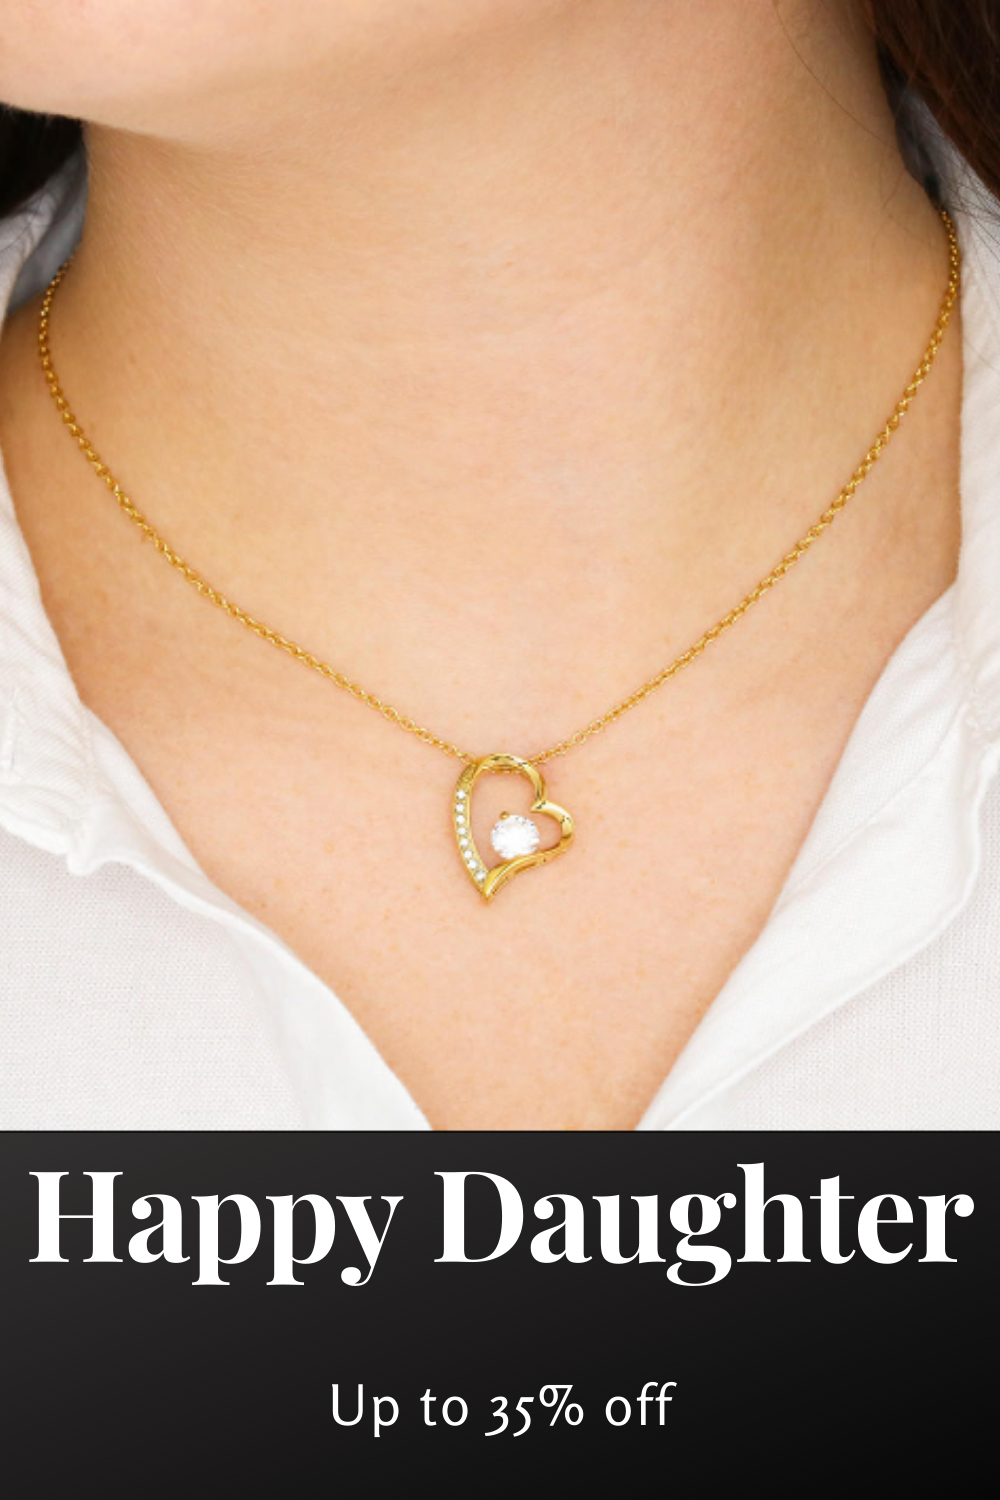 24+ Jewelry for daughter from parents info